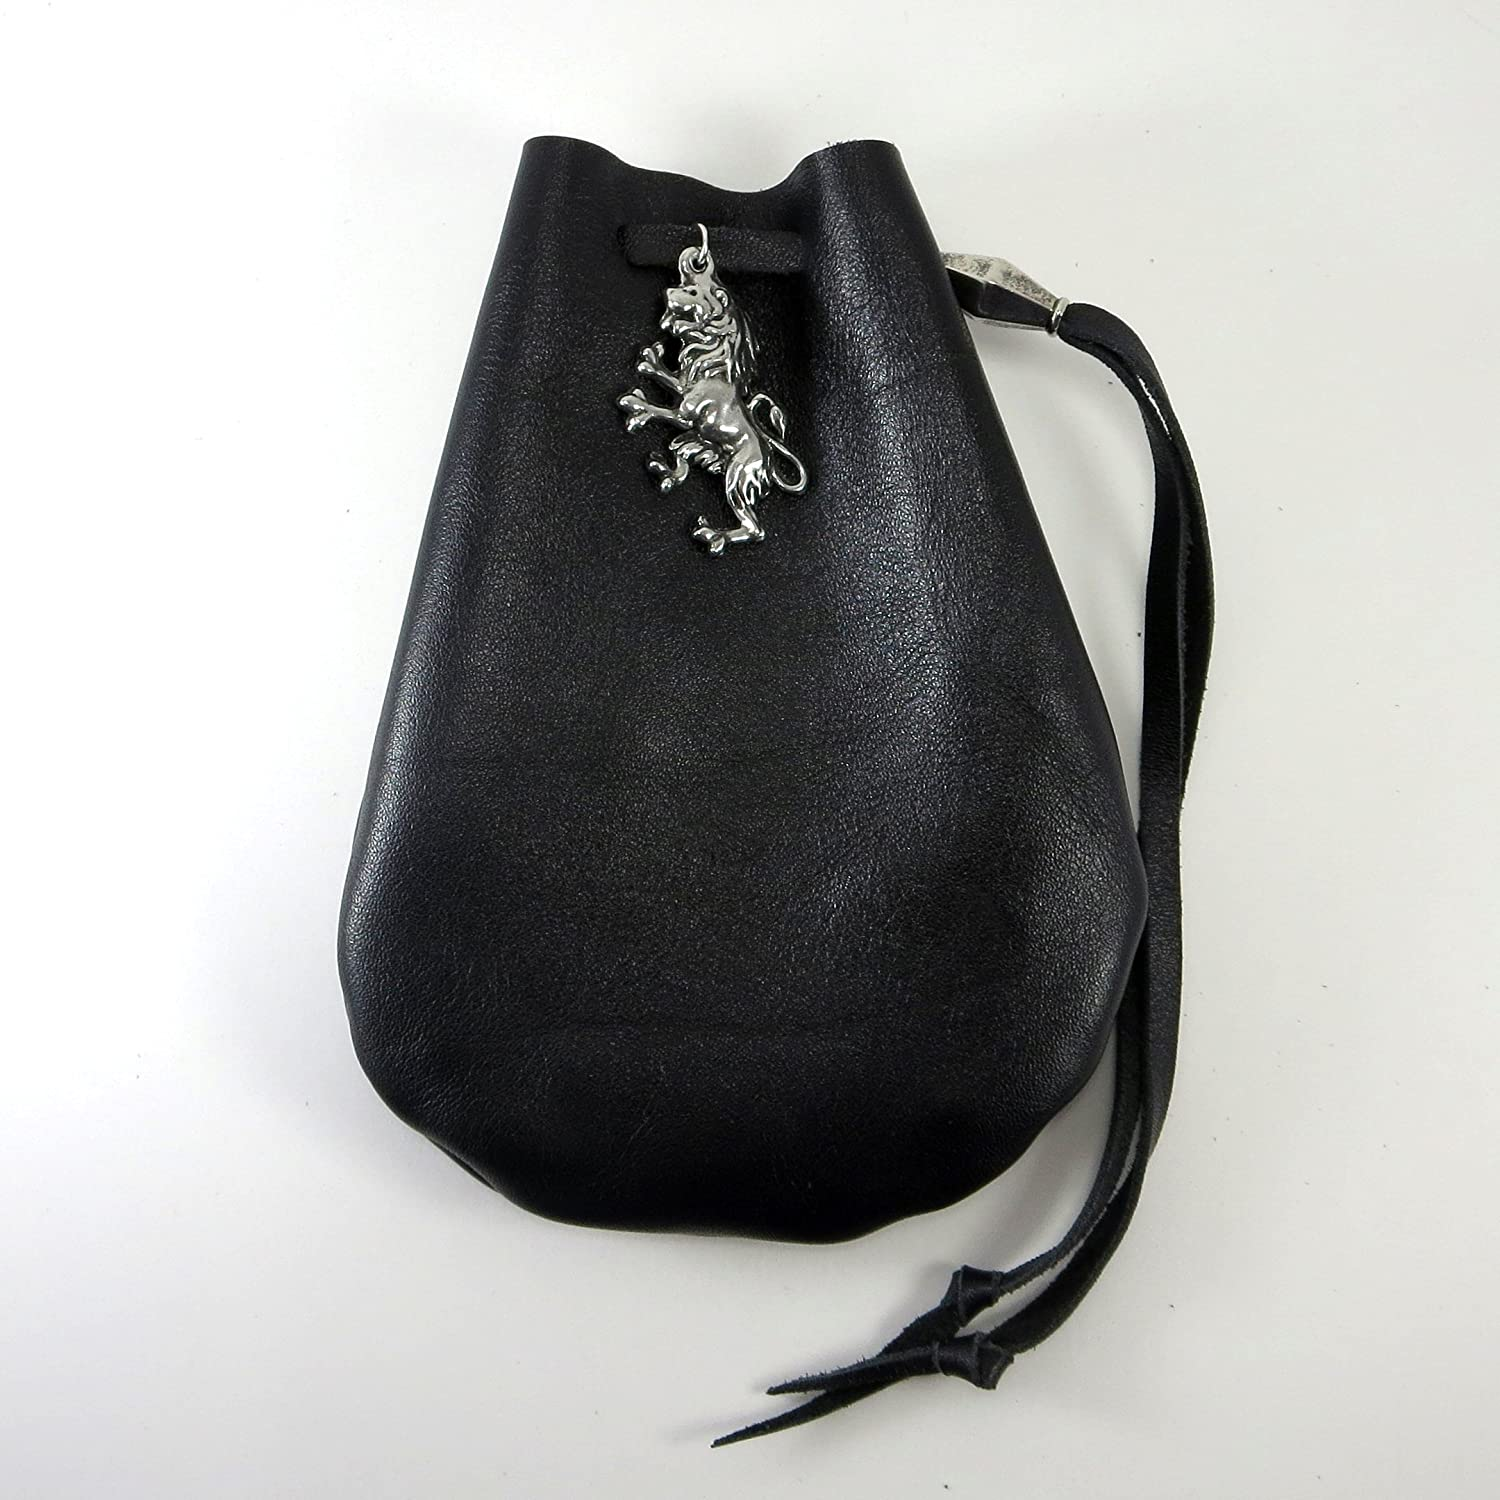 Handmade Black Leather & Pewter Lion Accent Drawstring Pouch